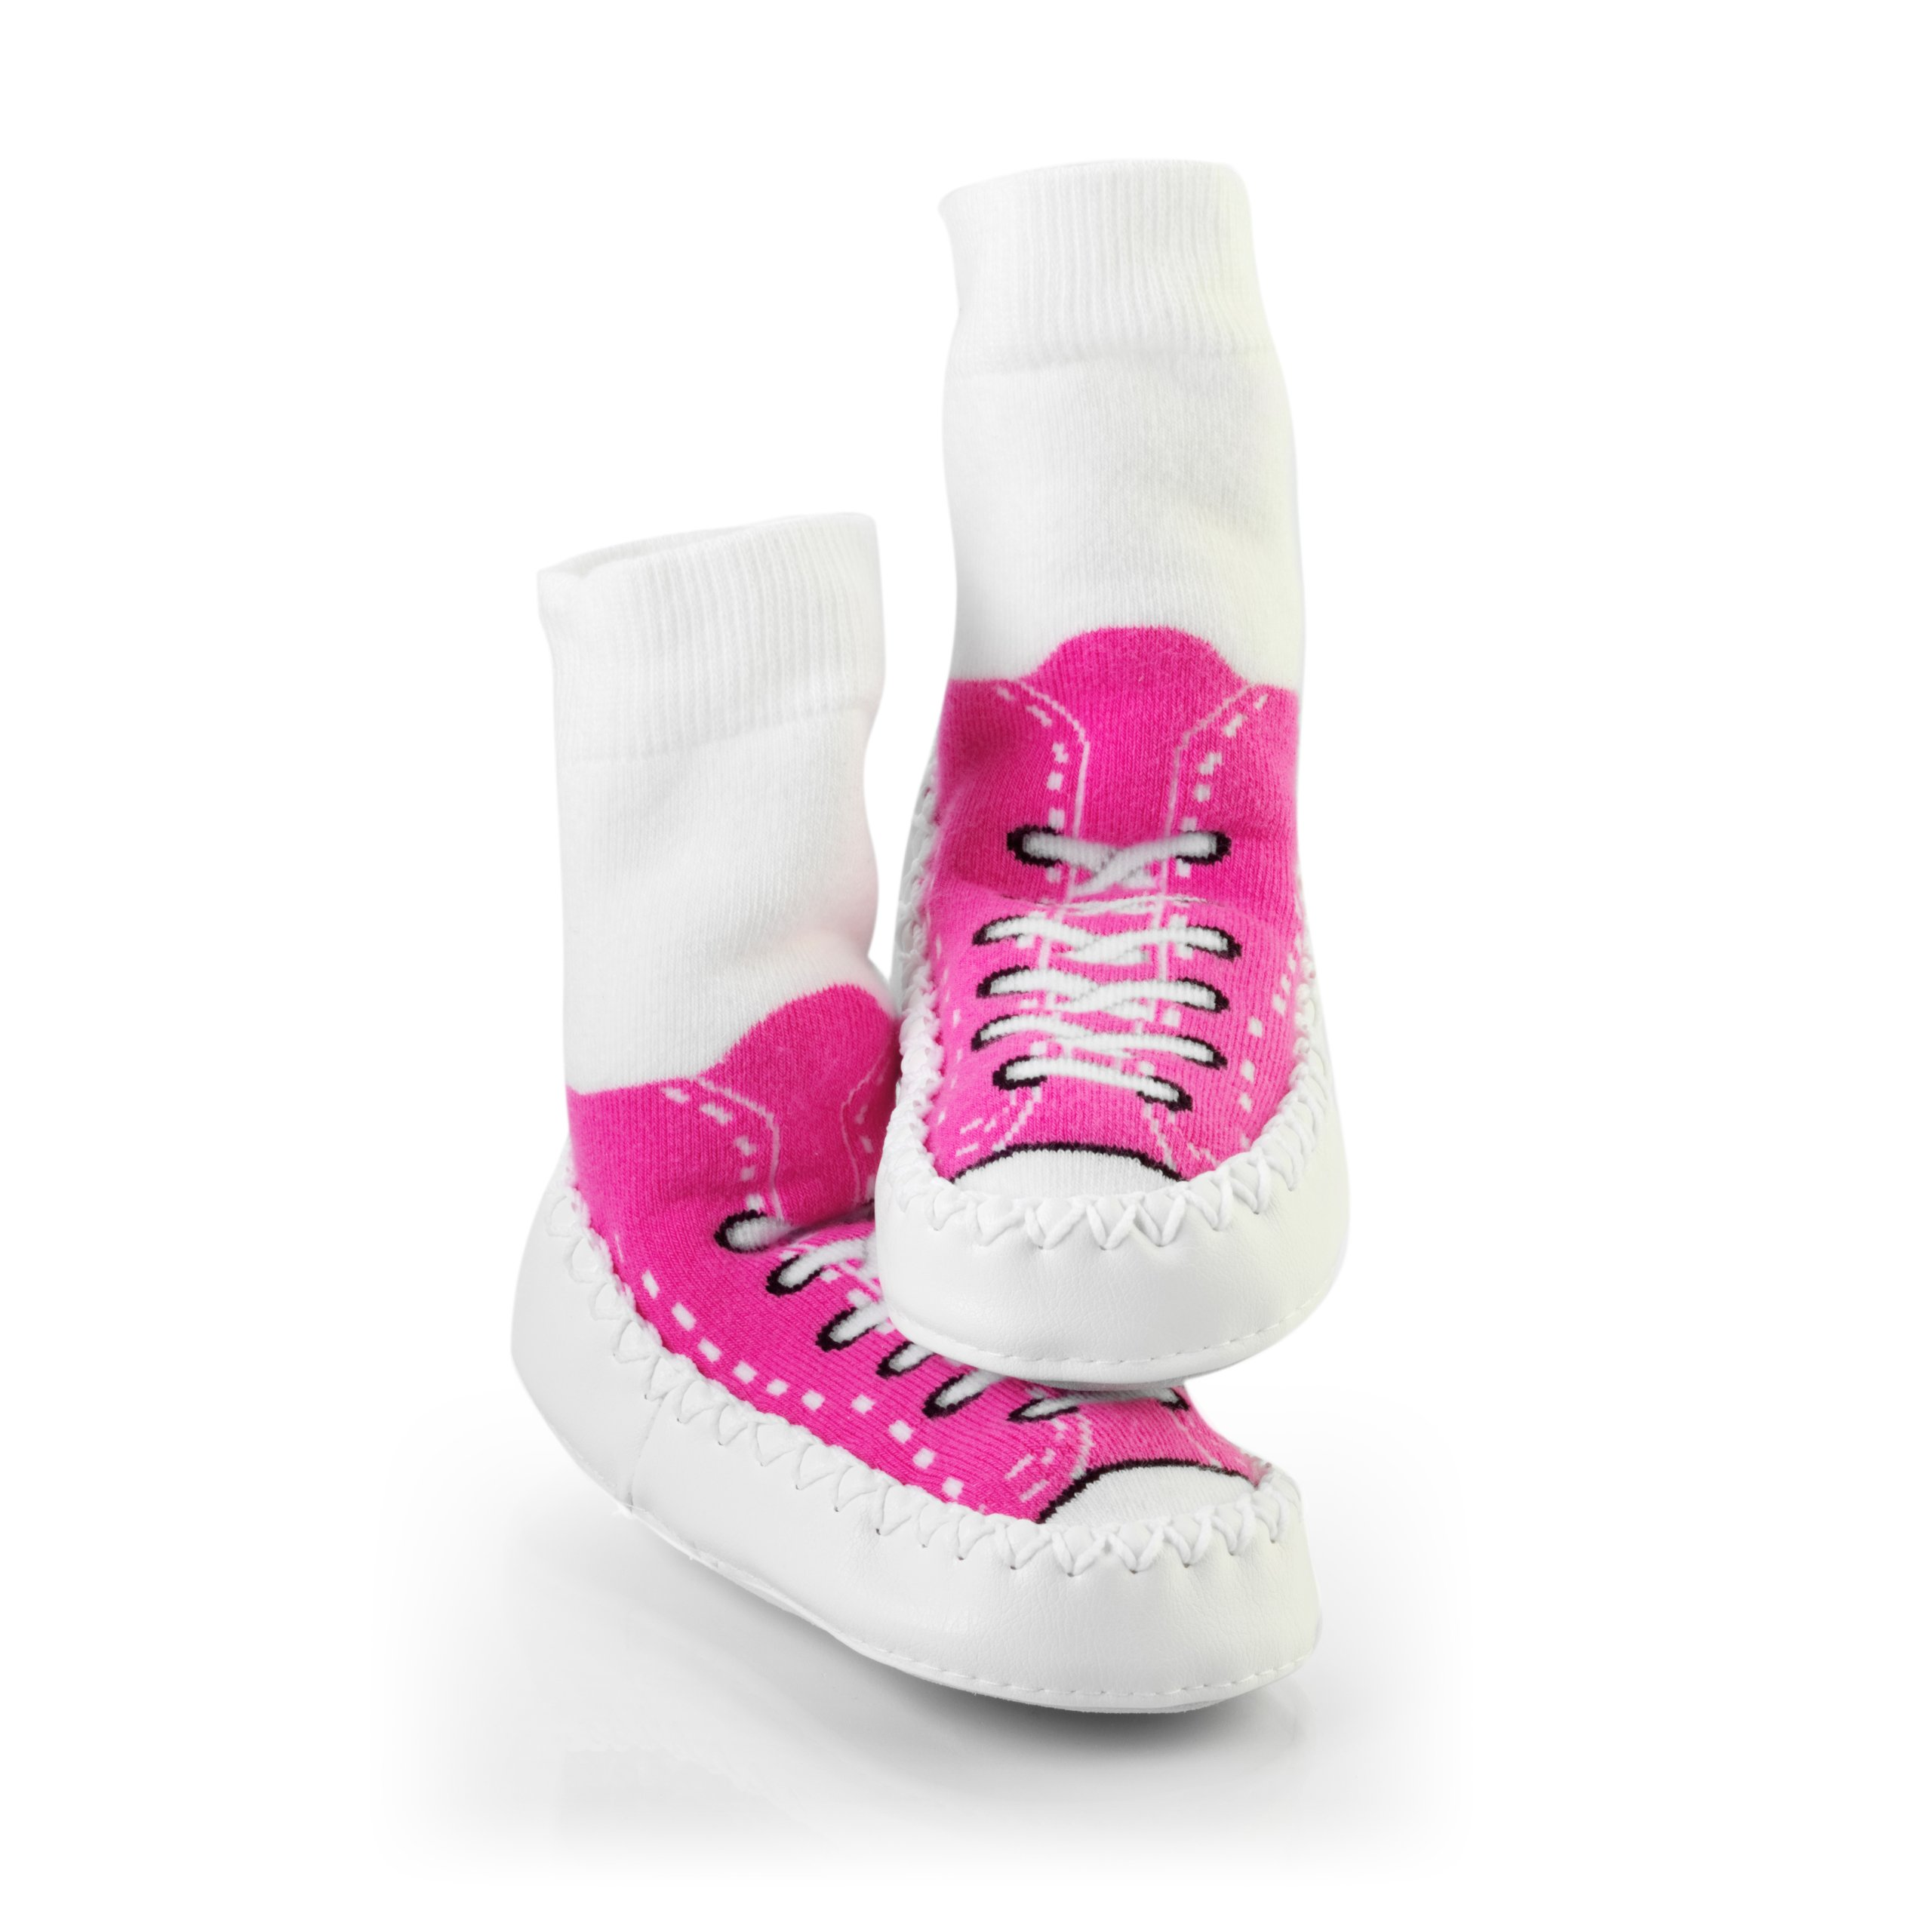 Mocc Ons Sneaker Slippers - 12-18 Months, Fuchsia